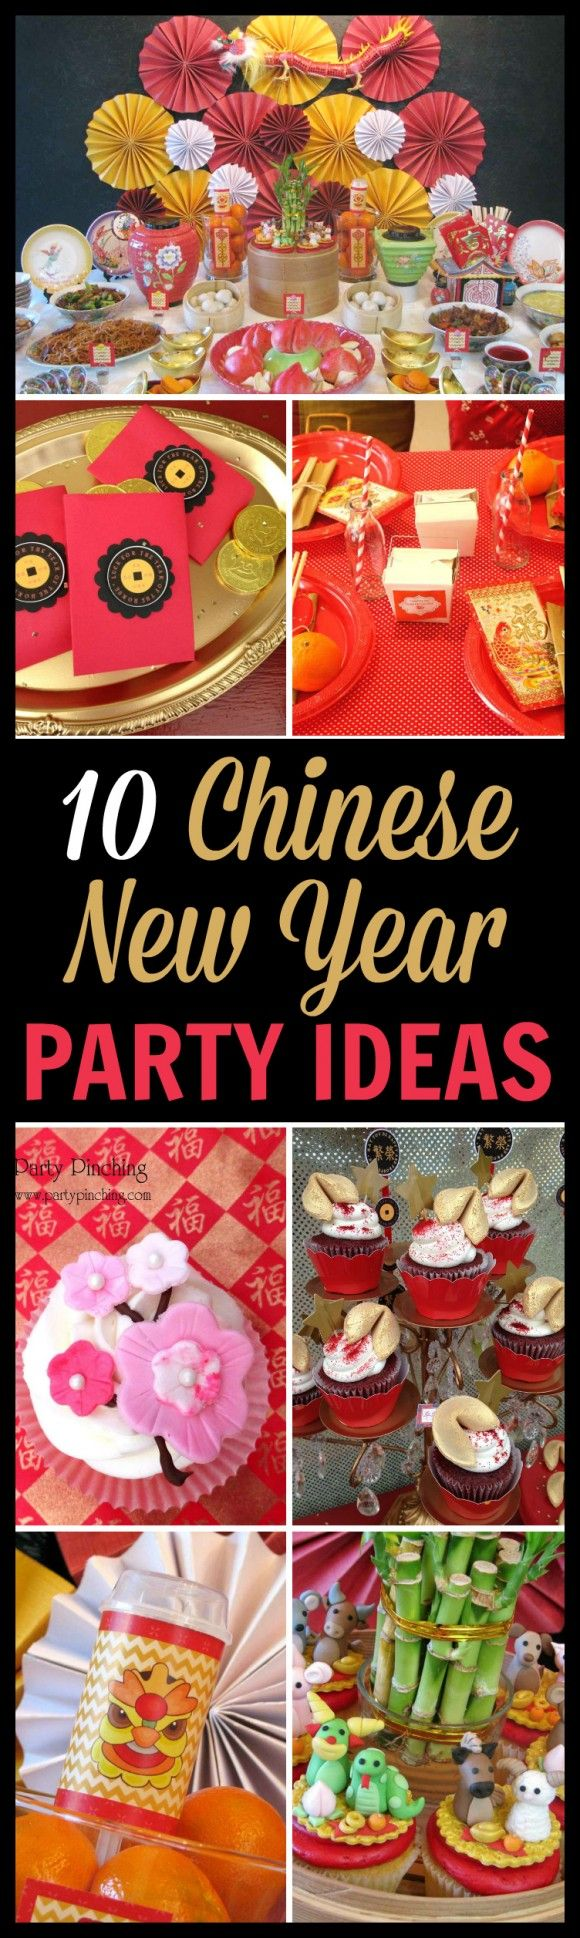 chinese new year party ideas | goats, favors and decoration